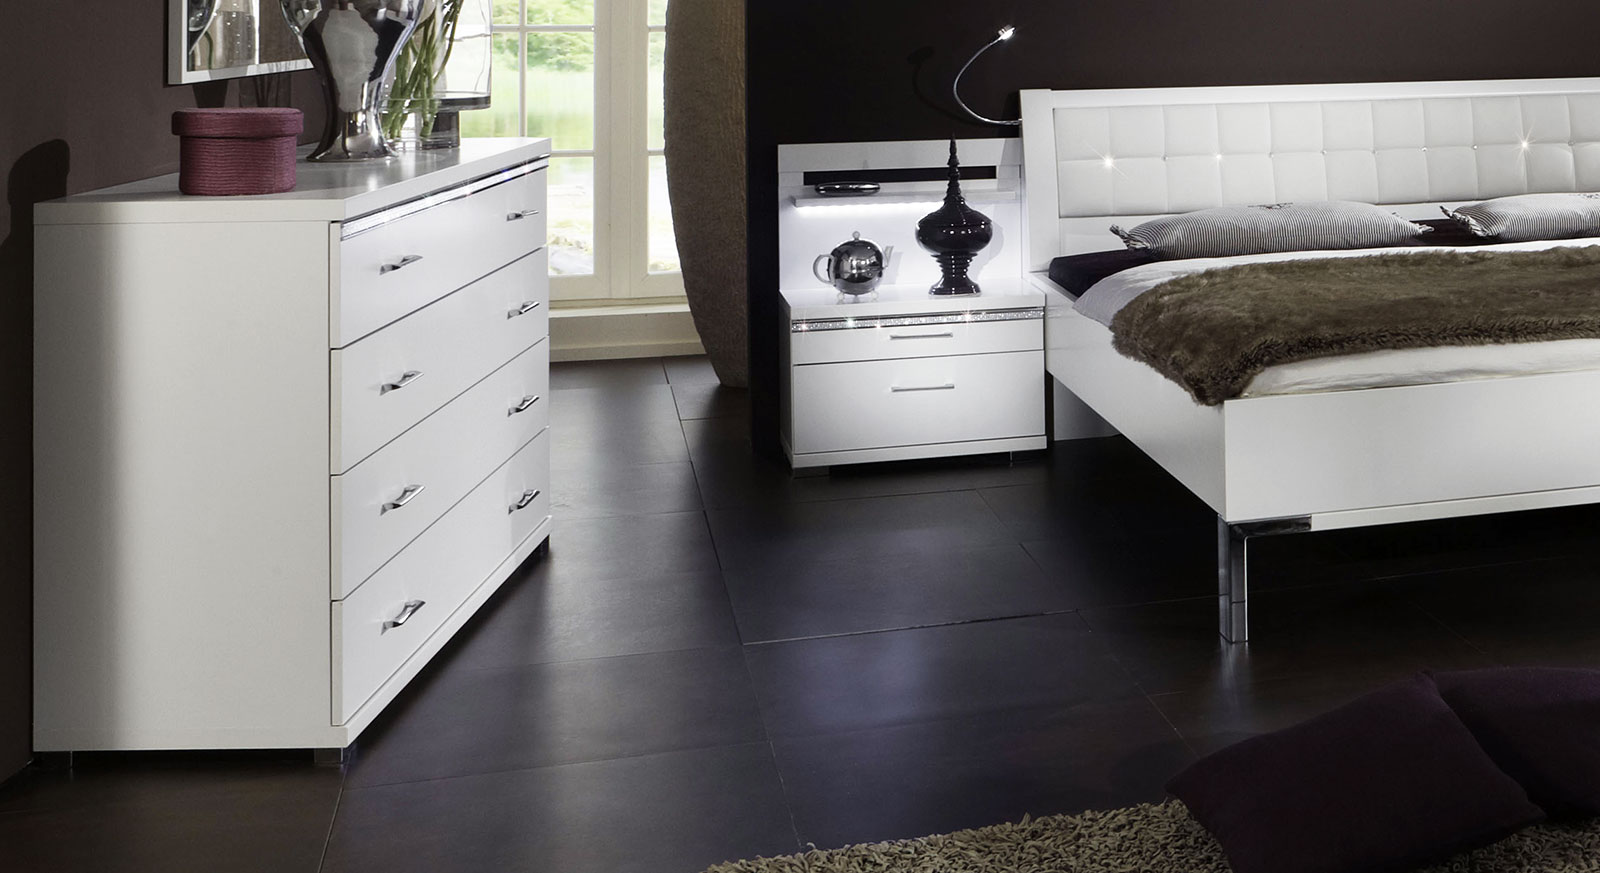 kommode mit 4 schubladen kristallsteinen huddersfield. Black Bedroom Furniture Sets. Home Design Ideas